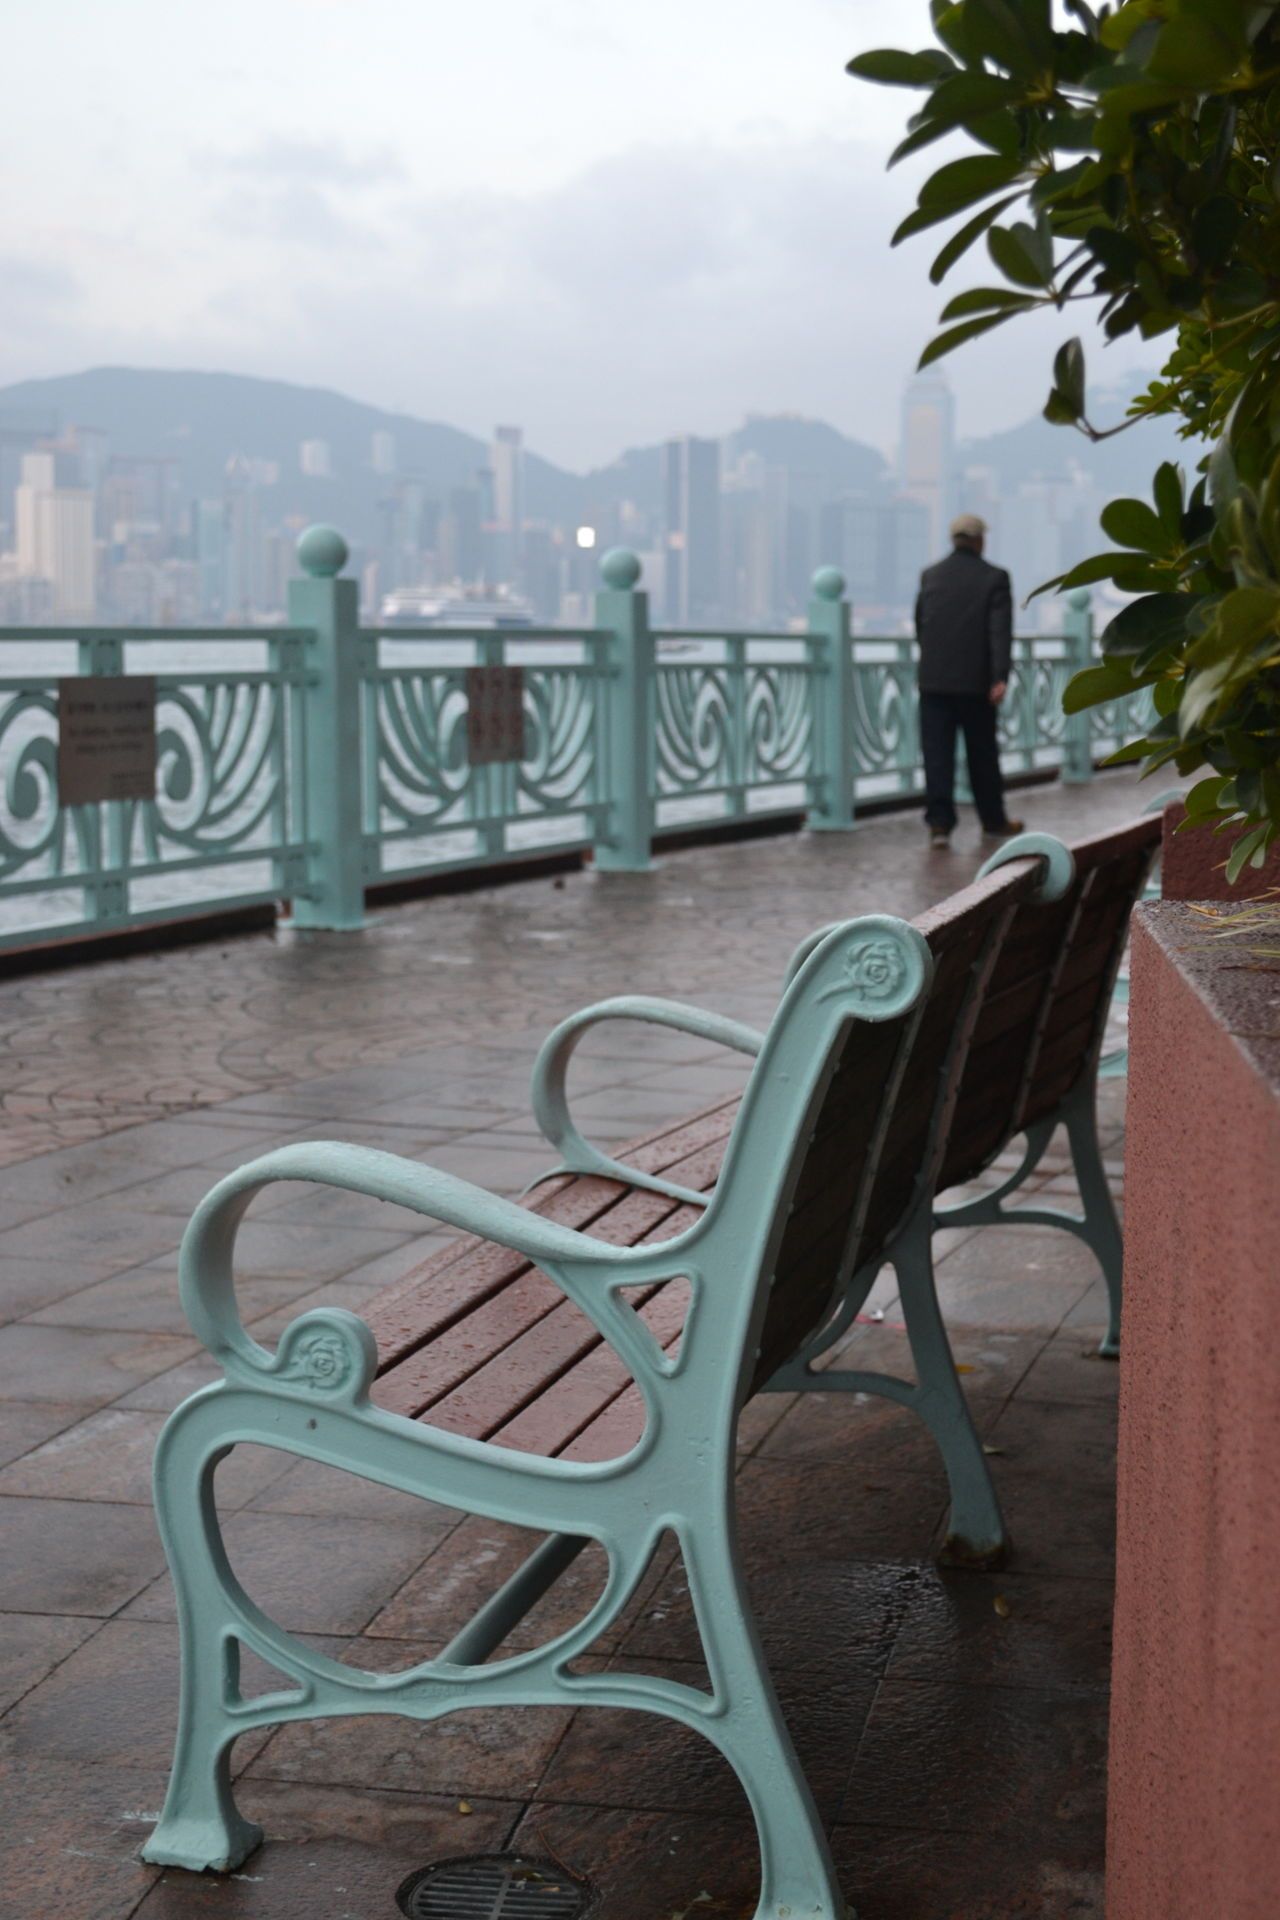 Architecture Bench Chair City Day Hong Kong Man Man Walking From Behind Outdoors Railing Rainy Days Relaxation Seat Sky And Clouds Skyline Travel Destinations Travel Photography Walking Around Waterfront